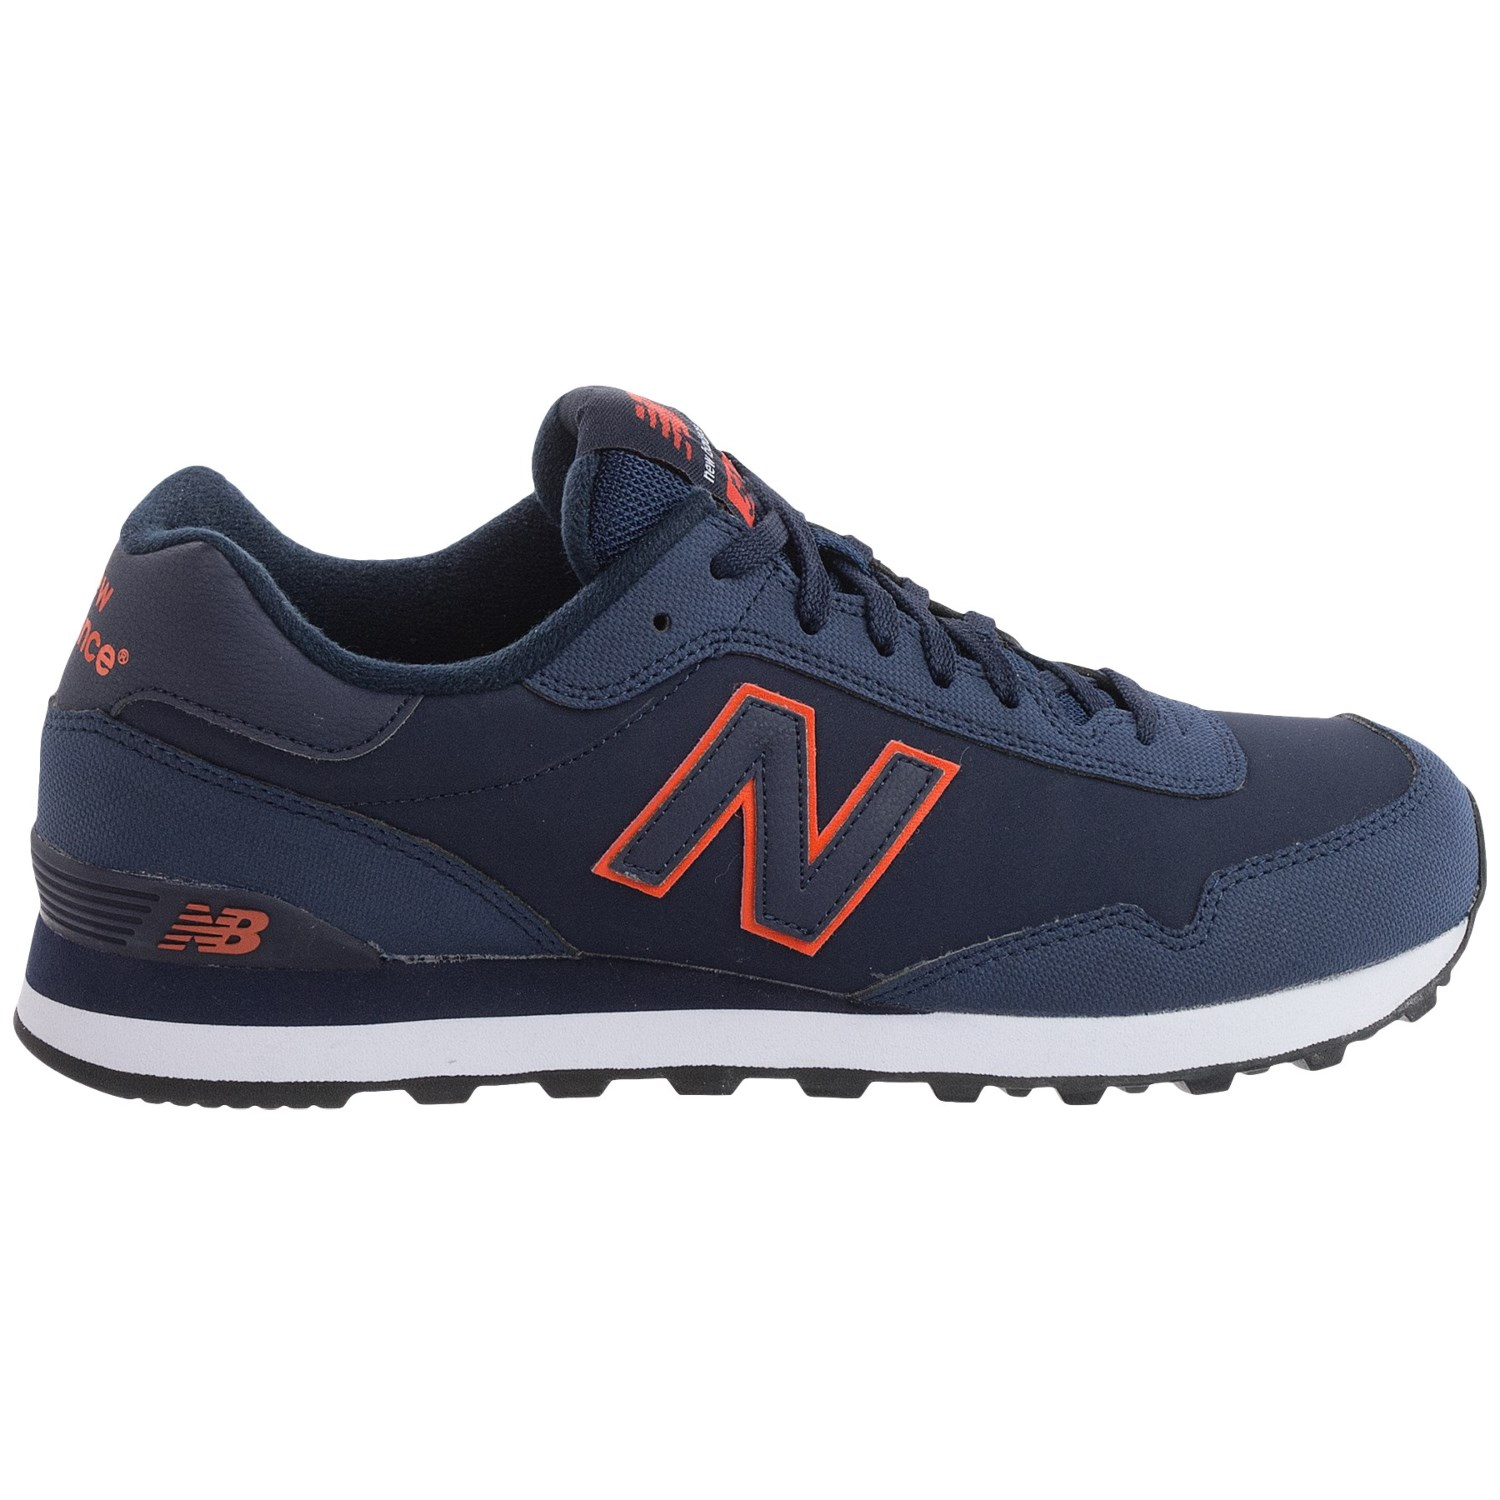 New Balance 515 new balance 515 sneakers (for men) LOTFMXO